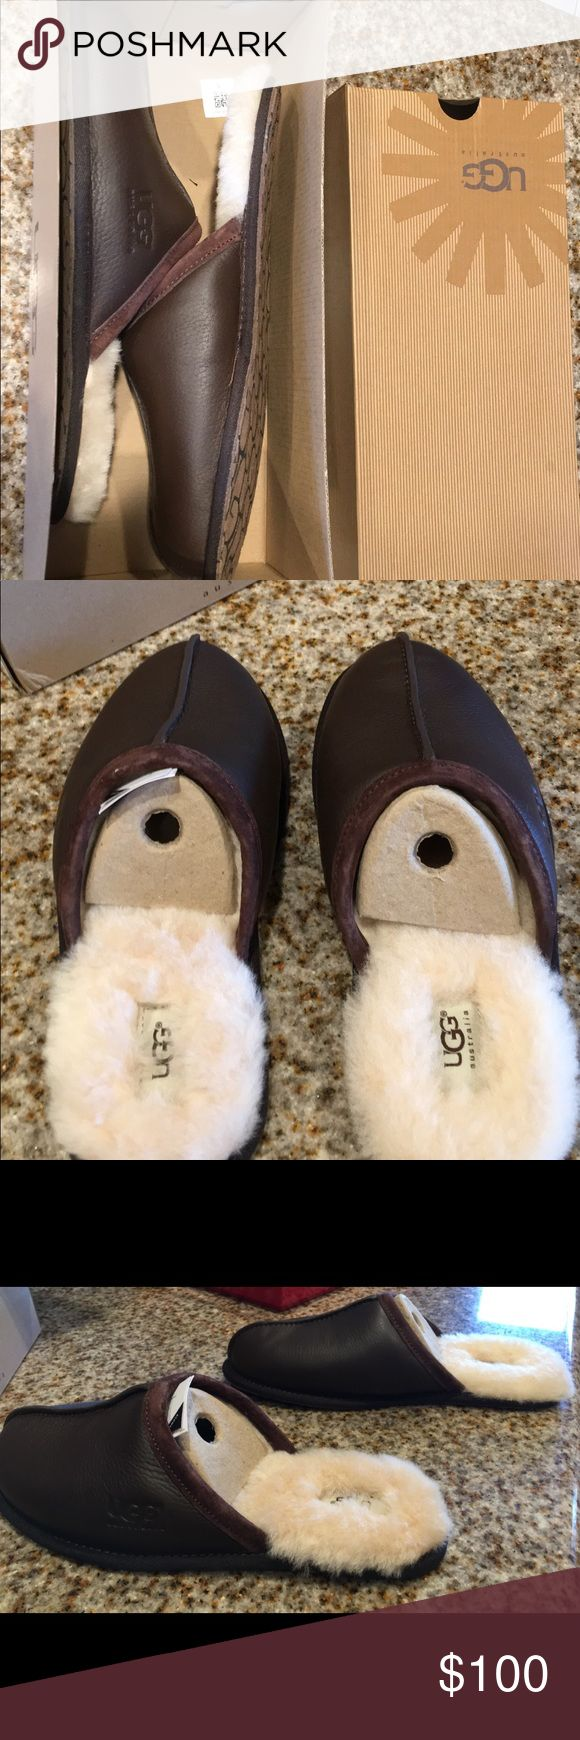 MEN UGG SLIPPERS (brand new) Size 10 in Men. NEVER been worn. In PERFECT condition, no flaws. Selling bc I lost receipt & I cant return these w/o it! Originally bought for $122. UGG Shoes Slippers